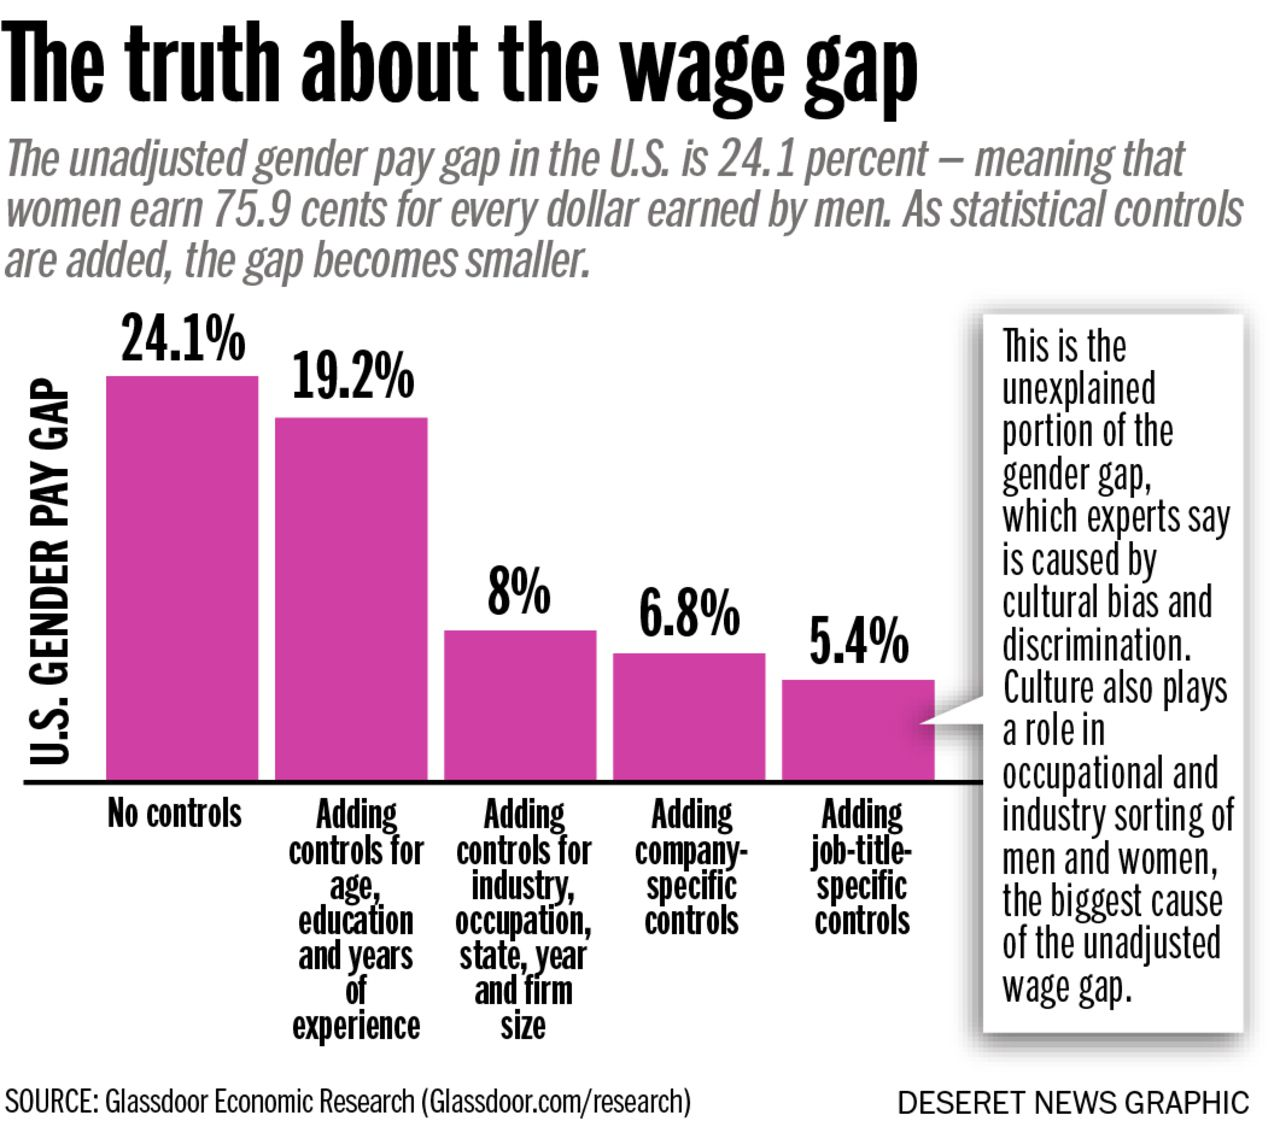 The truth about Utah's and the nation's gender pay gap